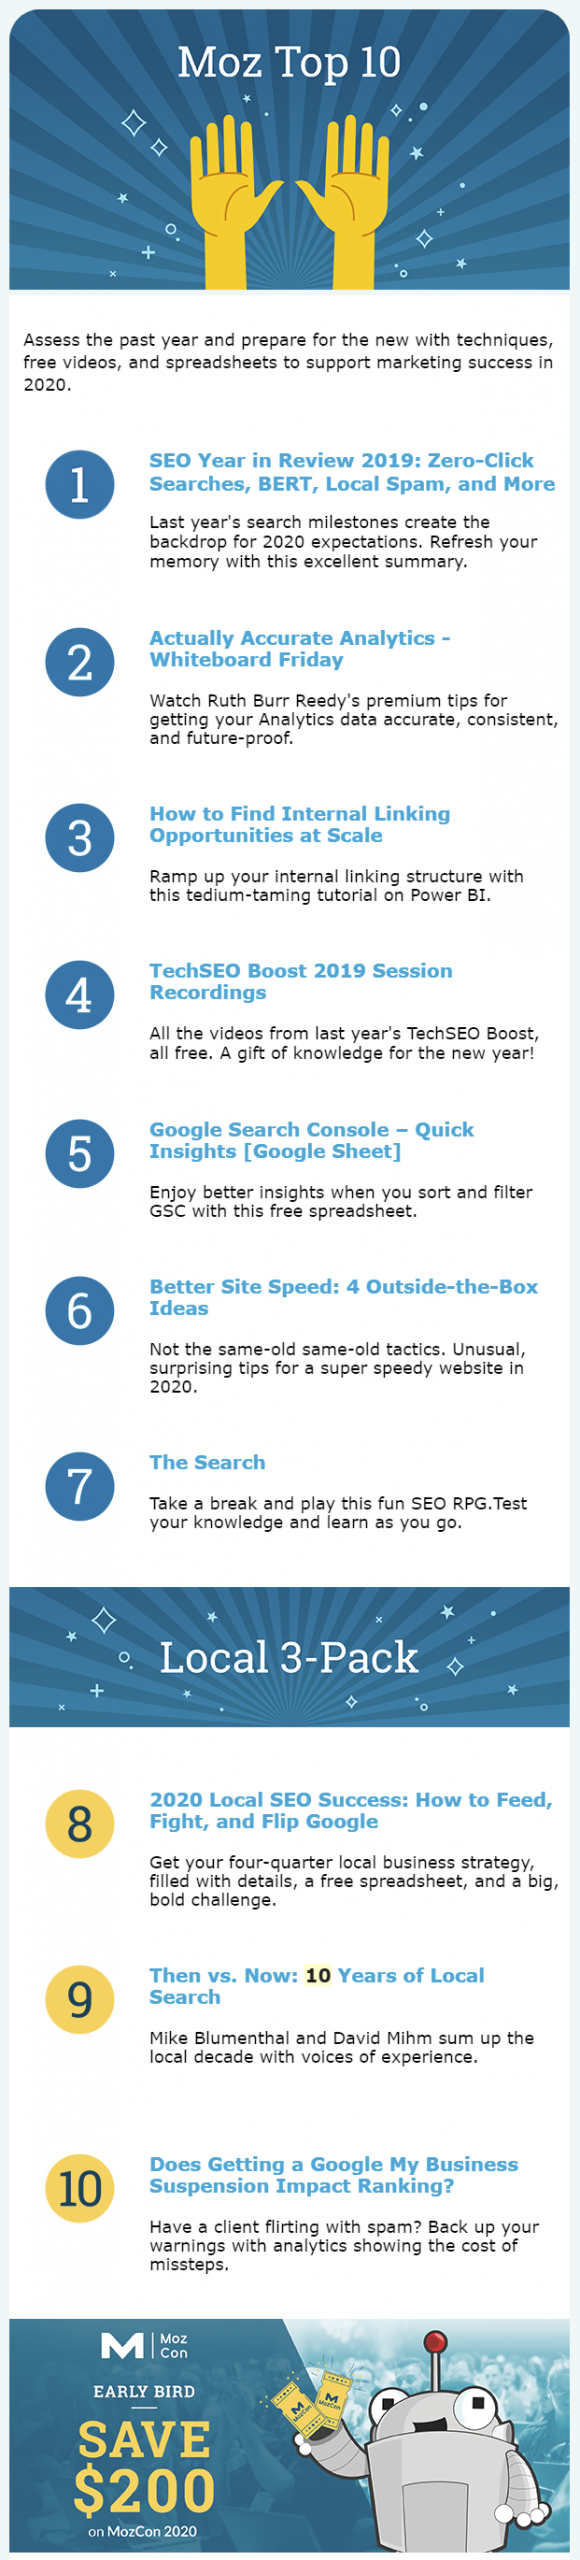 Moz Top 10 email newsletter